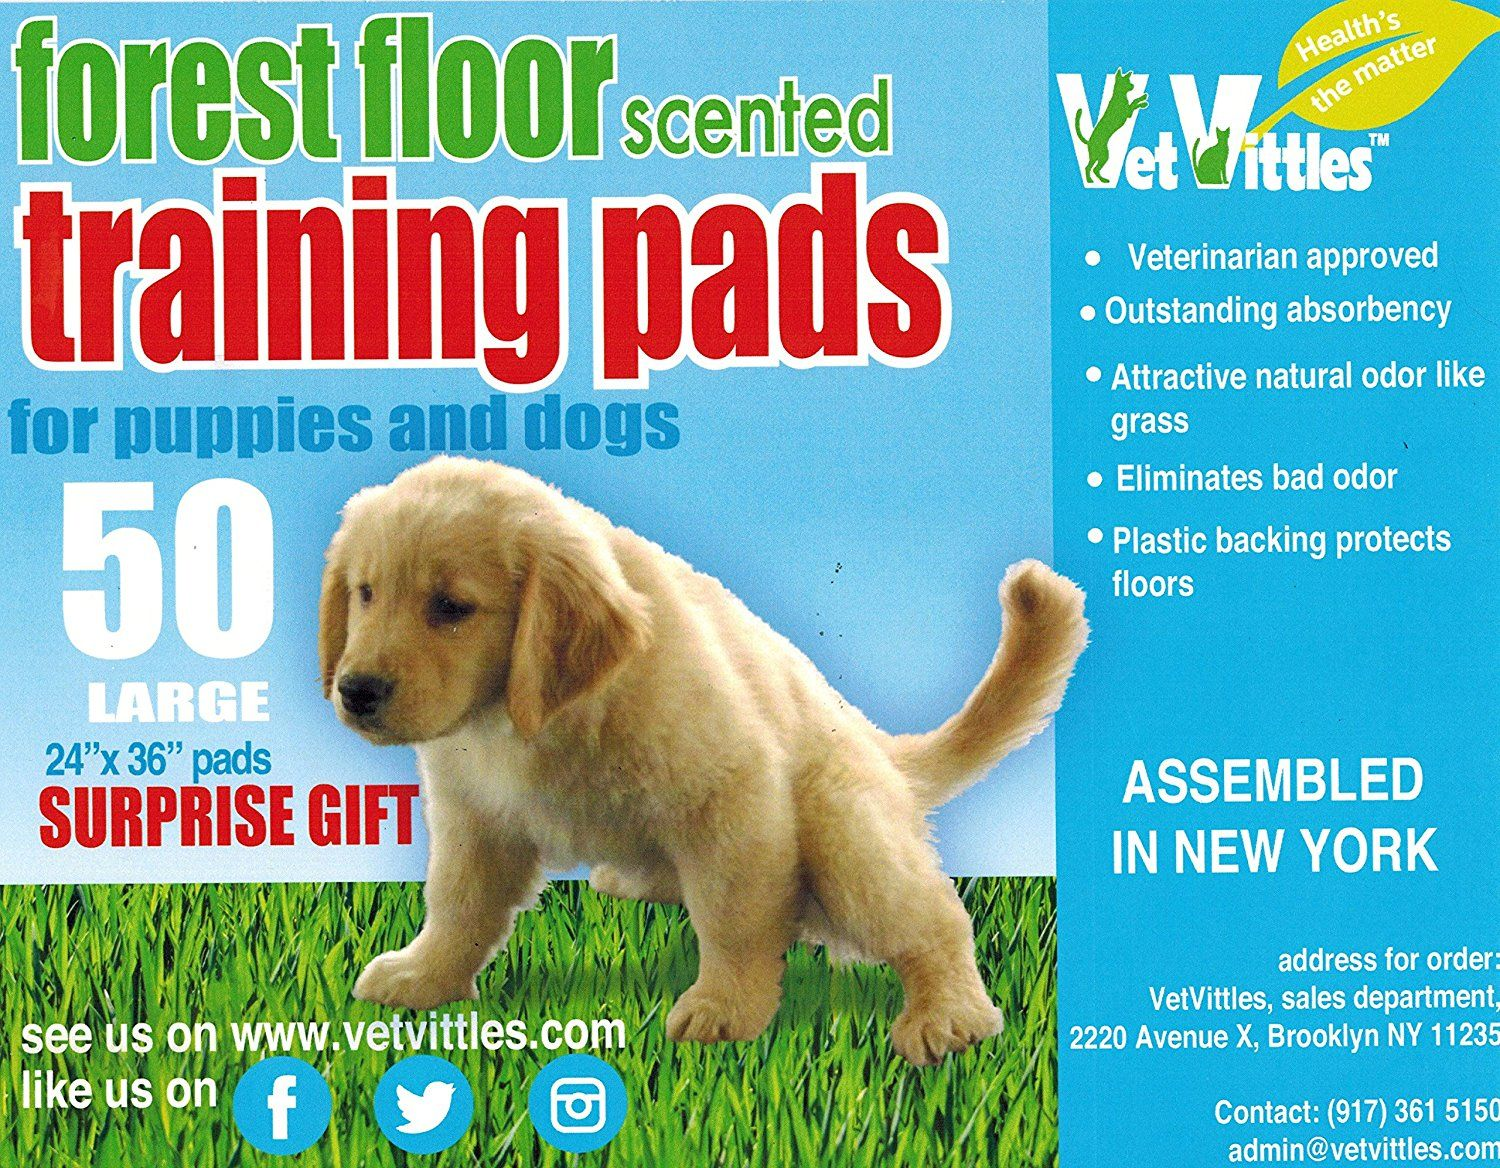 Vetvittles Forest Floor Scented Training Pads For Puppies And Dogs